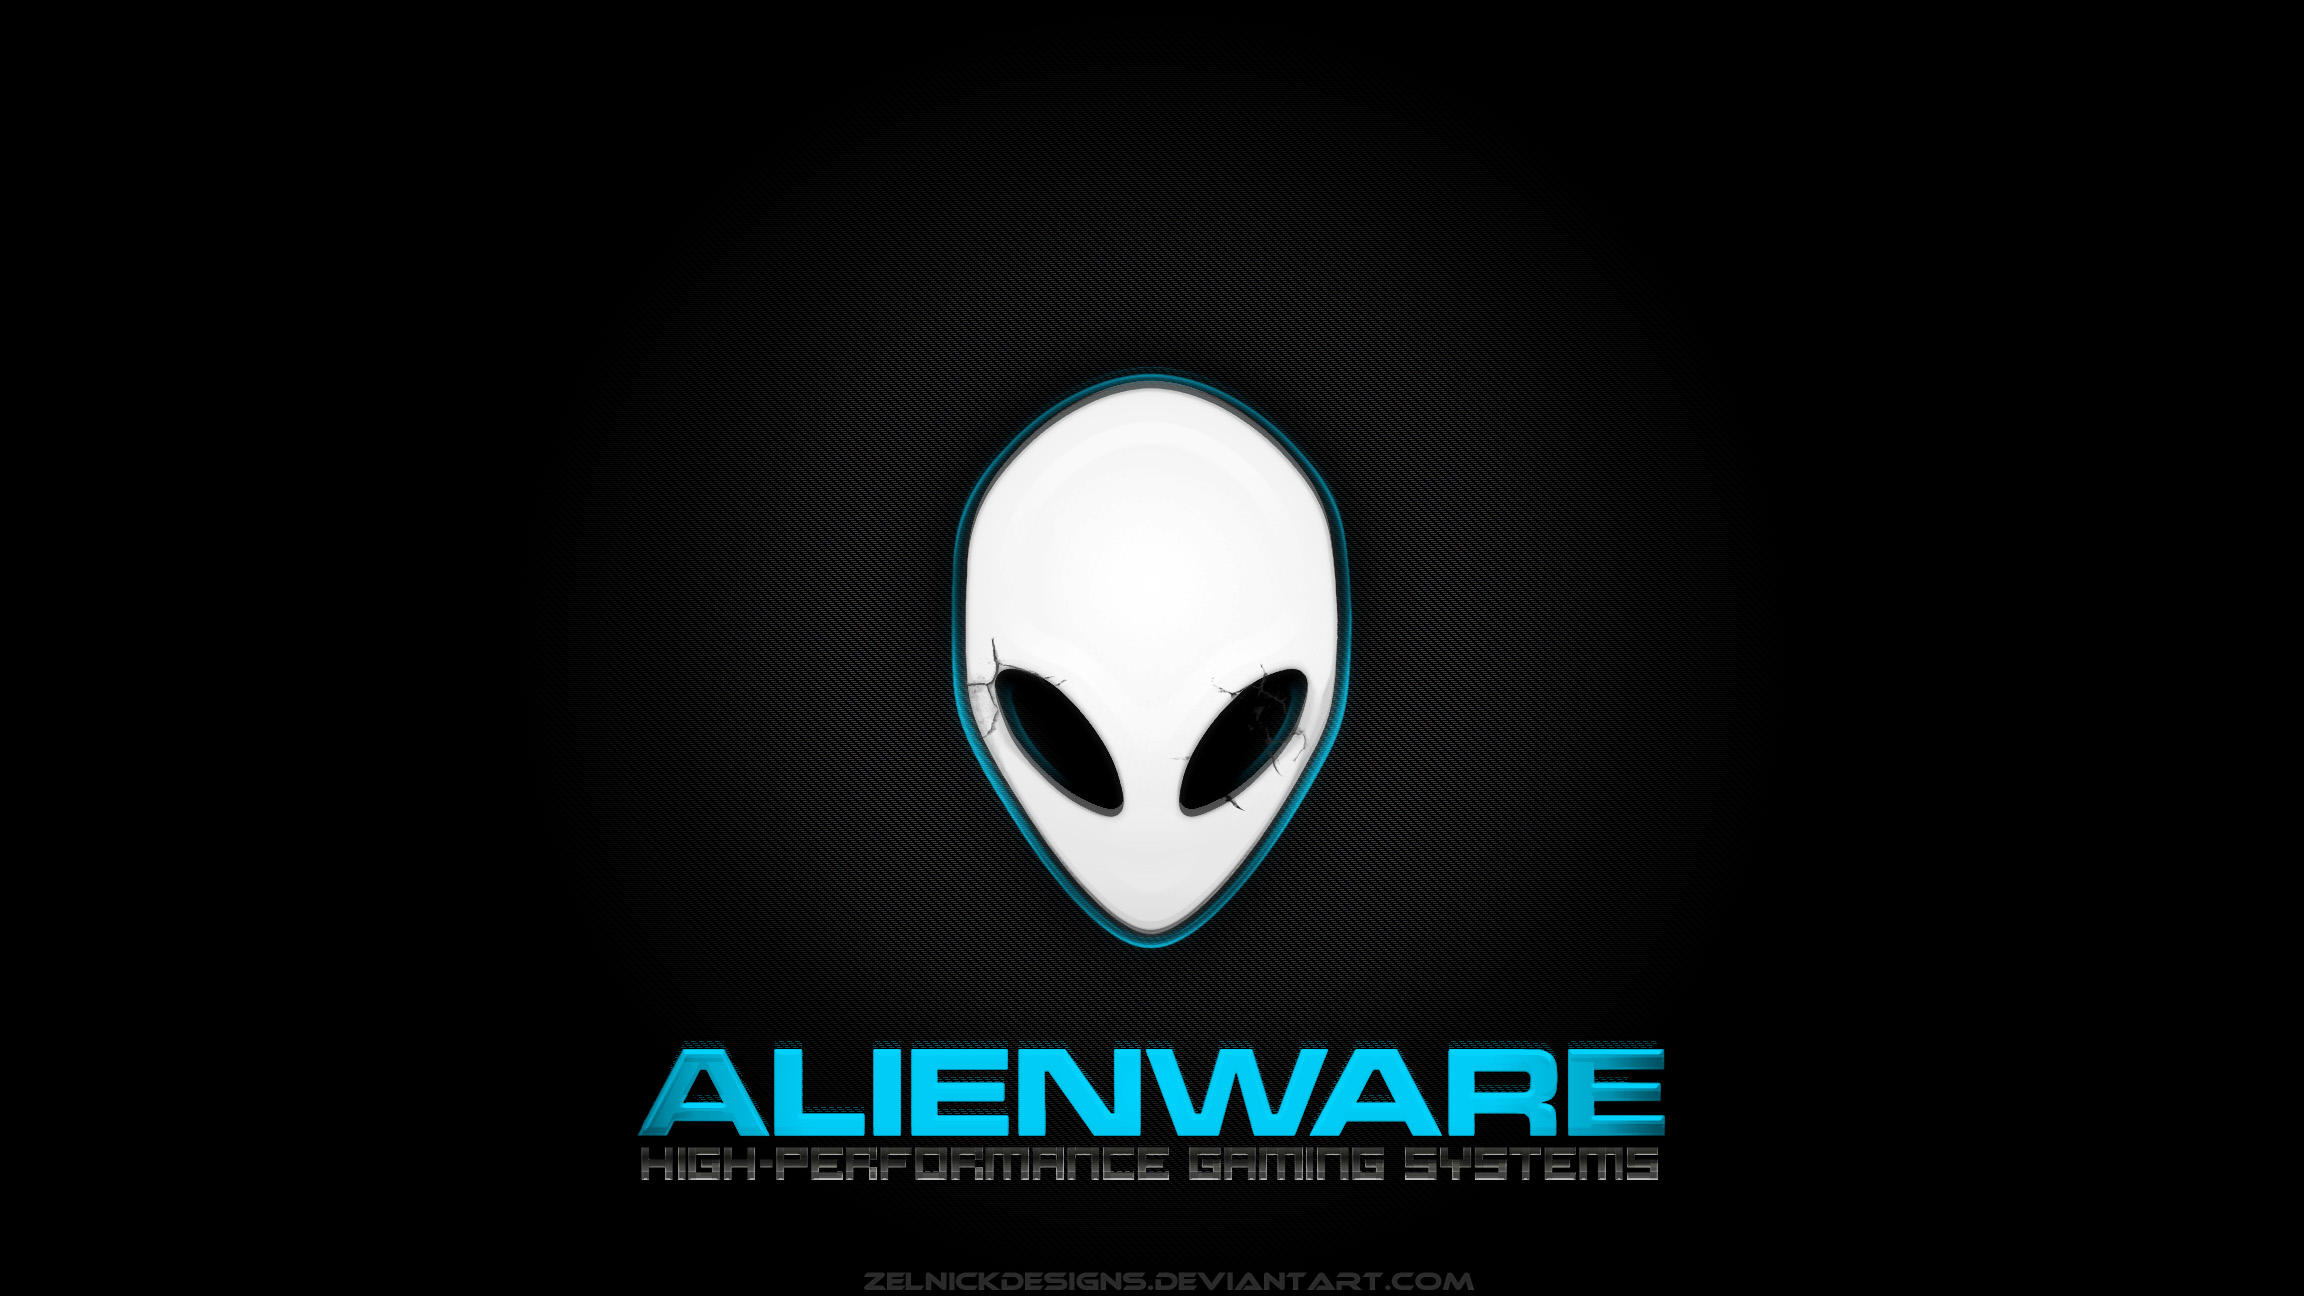 Alienware Wallpaper Pack v2 by ZelnickDesigns